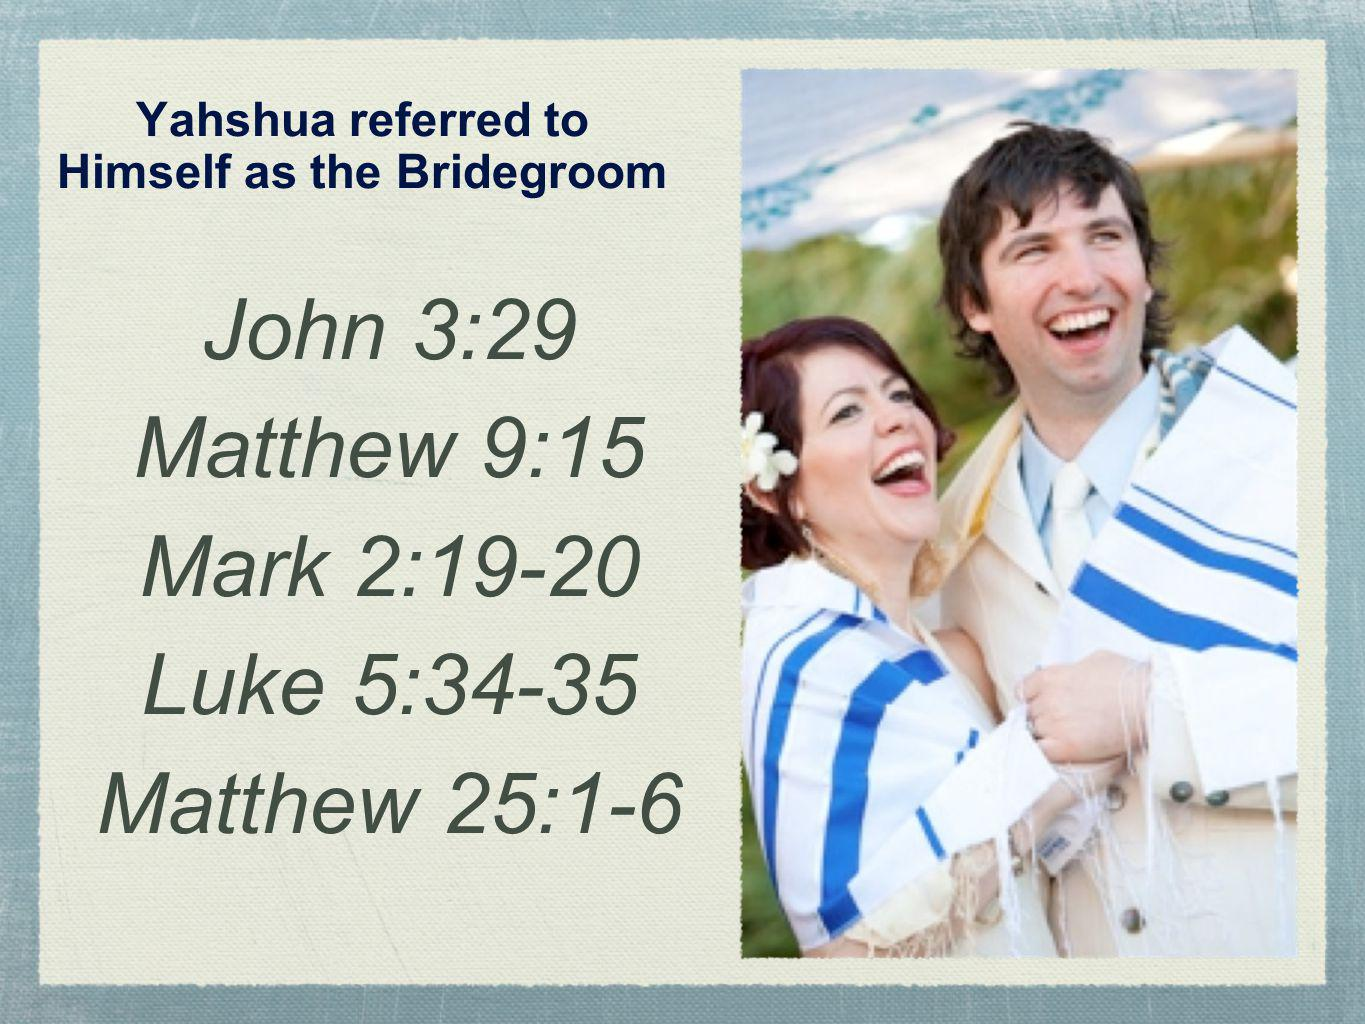 Yahshua referred to Himself as the Bridegroom